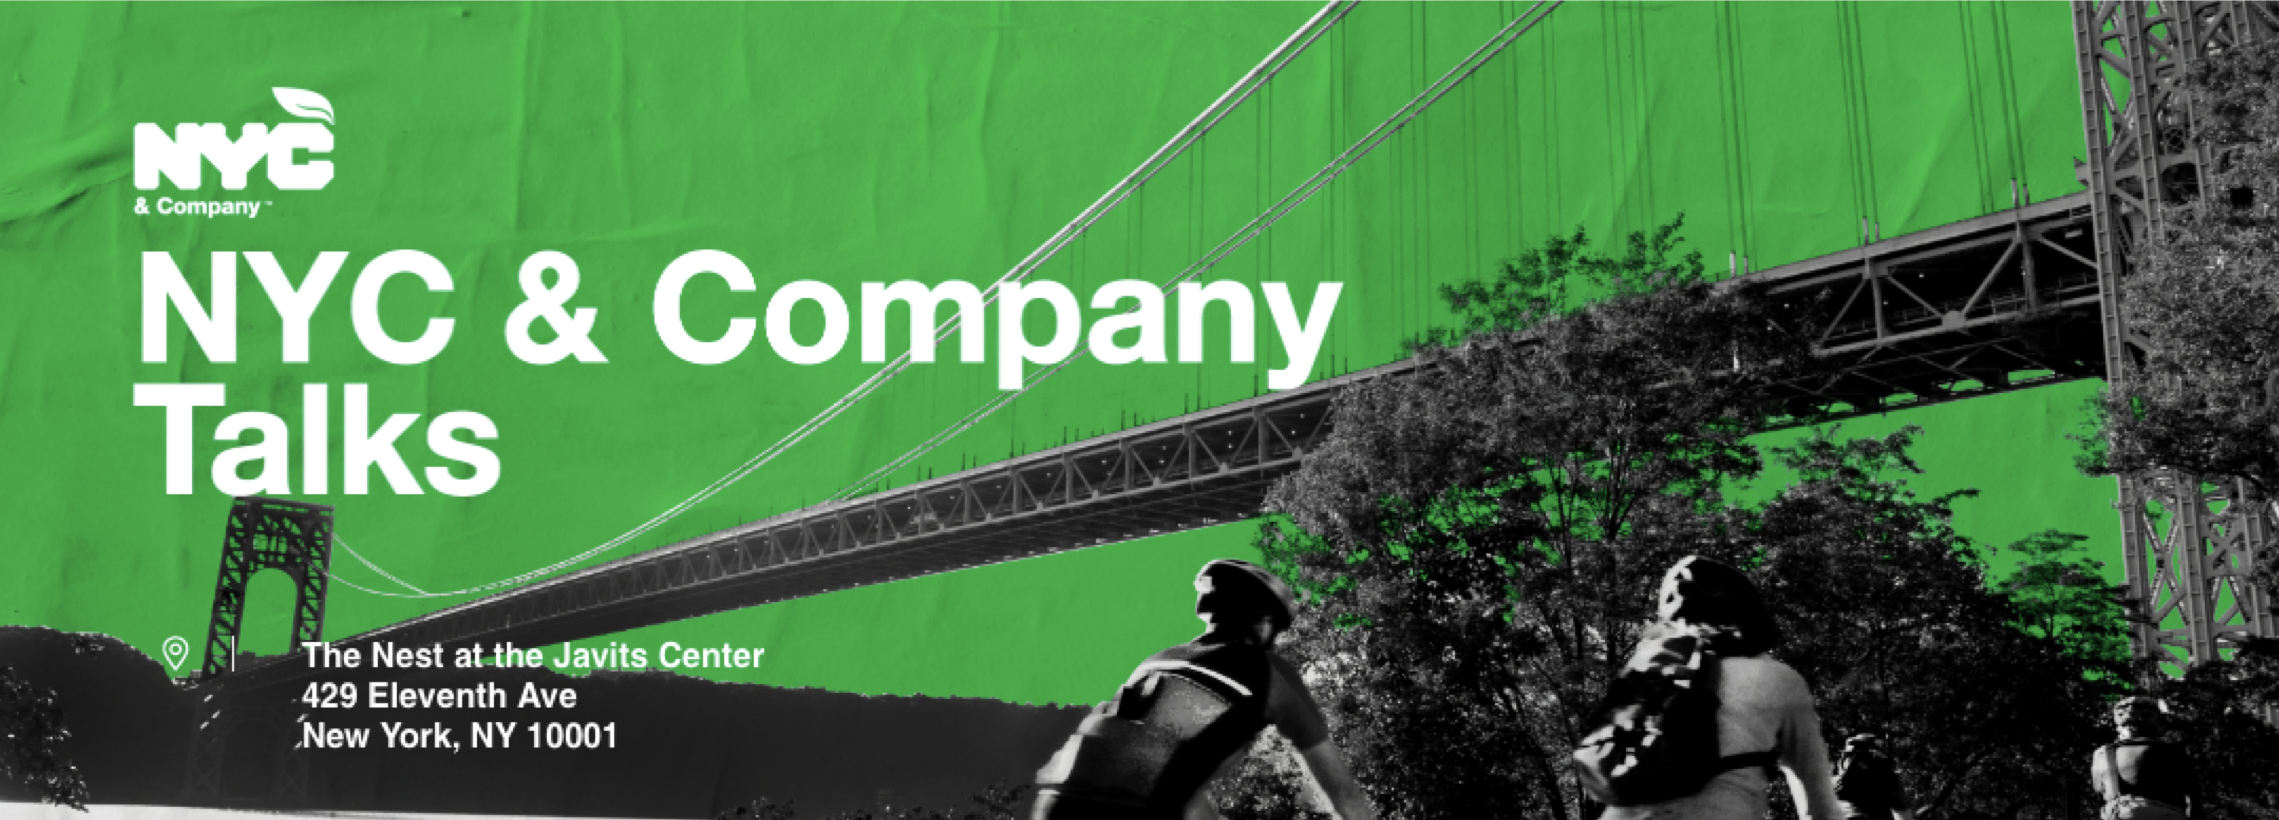 Join our friends, NYC & Co. - NYC & Company Talks: Building Sustainable Tourism Together will feature keynote speakers alongside three panels exploring the latest sustainability considerations for the hospitality industry.